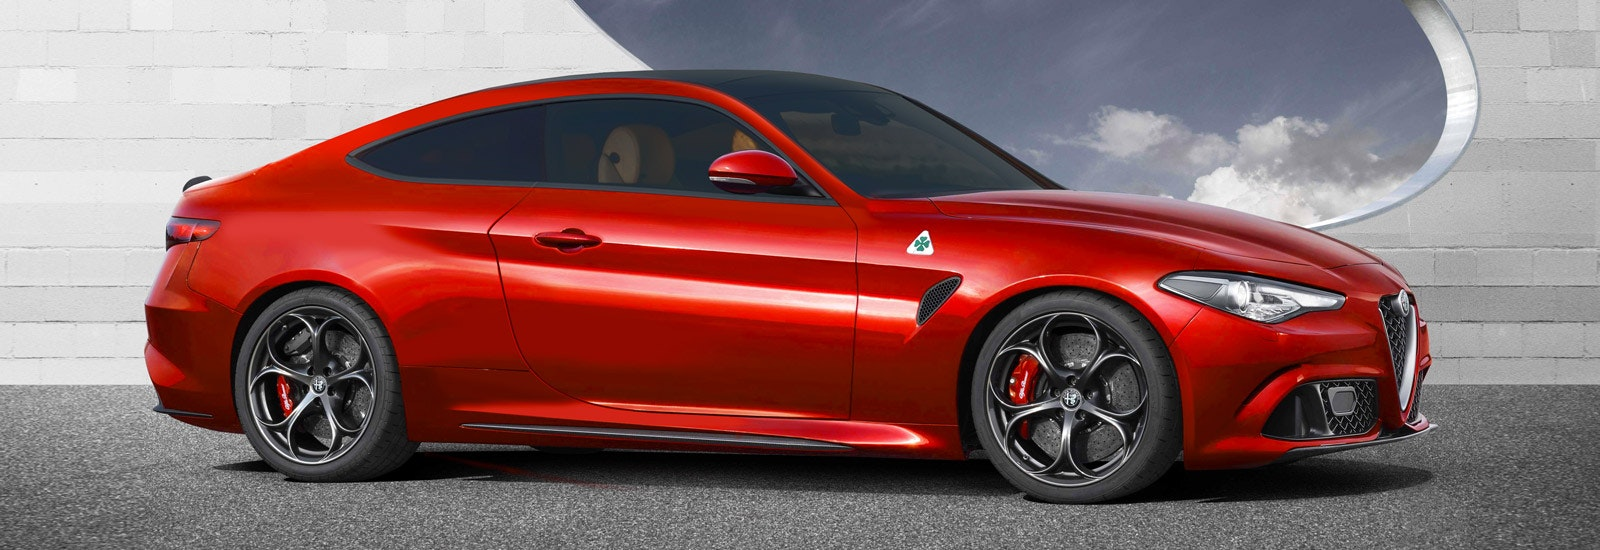 2019 Alfa Romeo Giulia Coupe Gtv Price Specs And Release Date Carwow